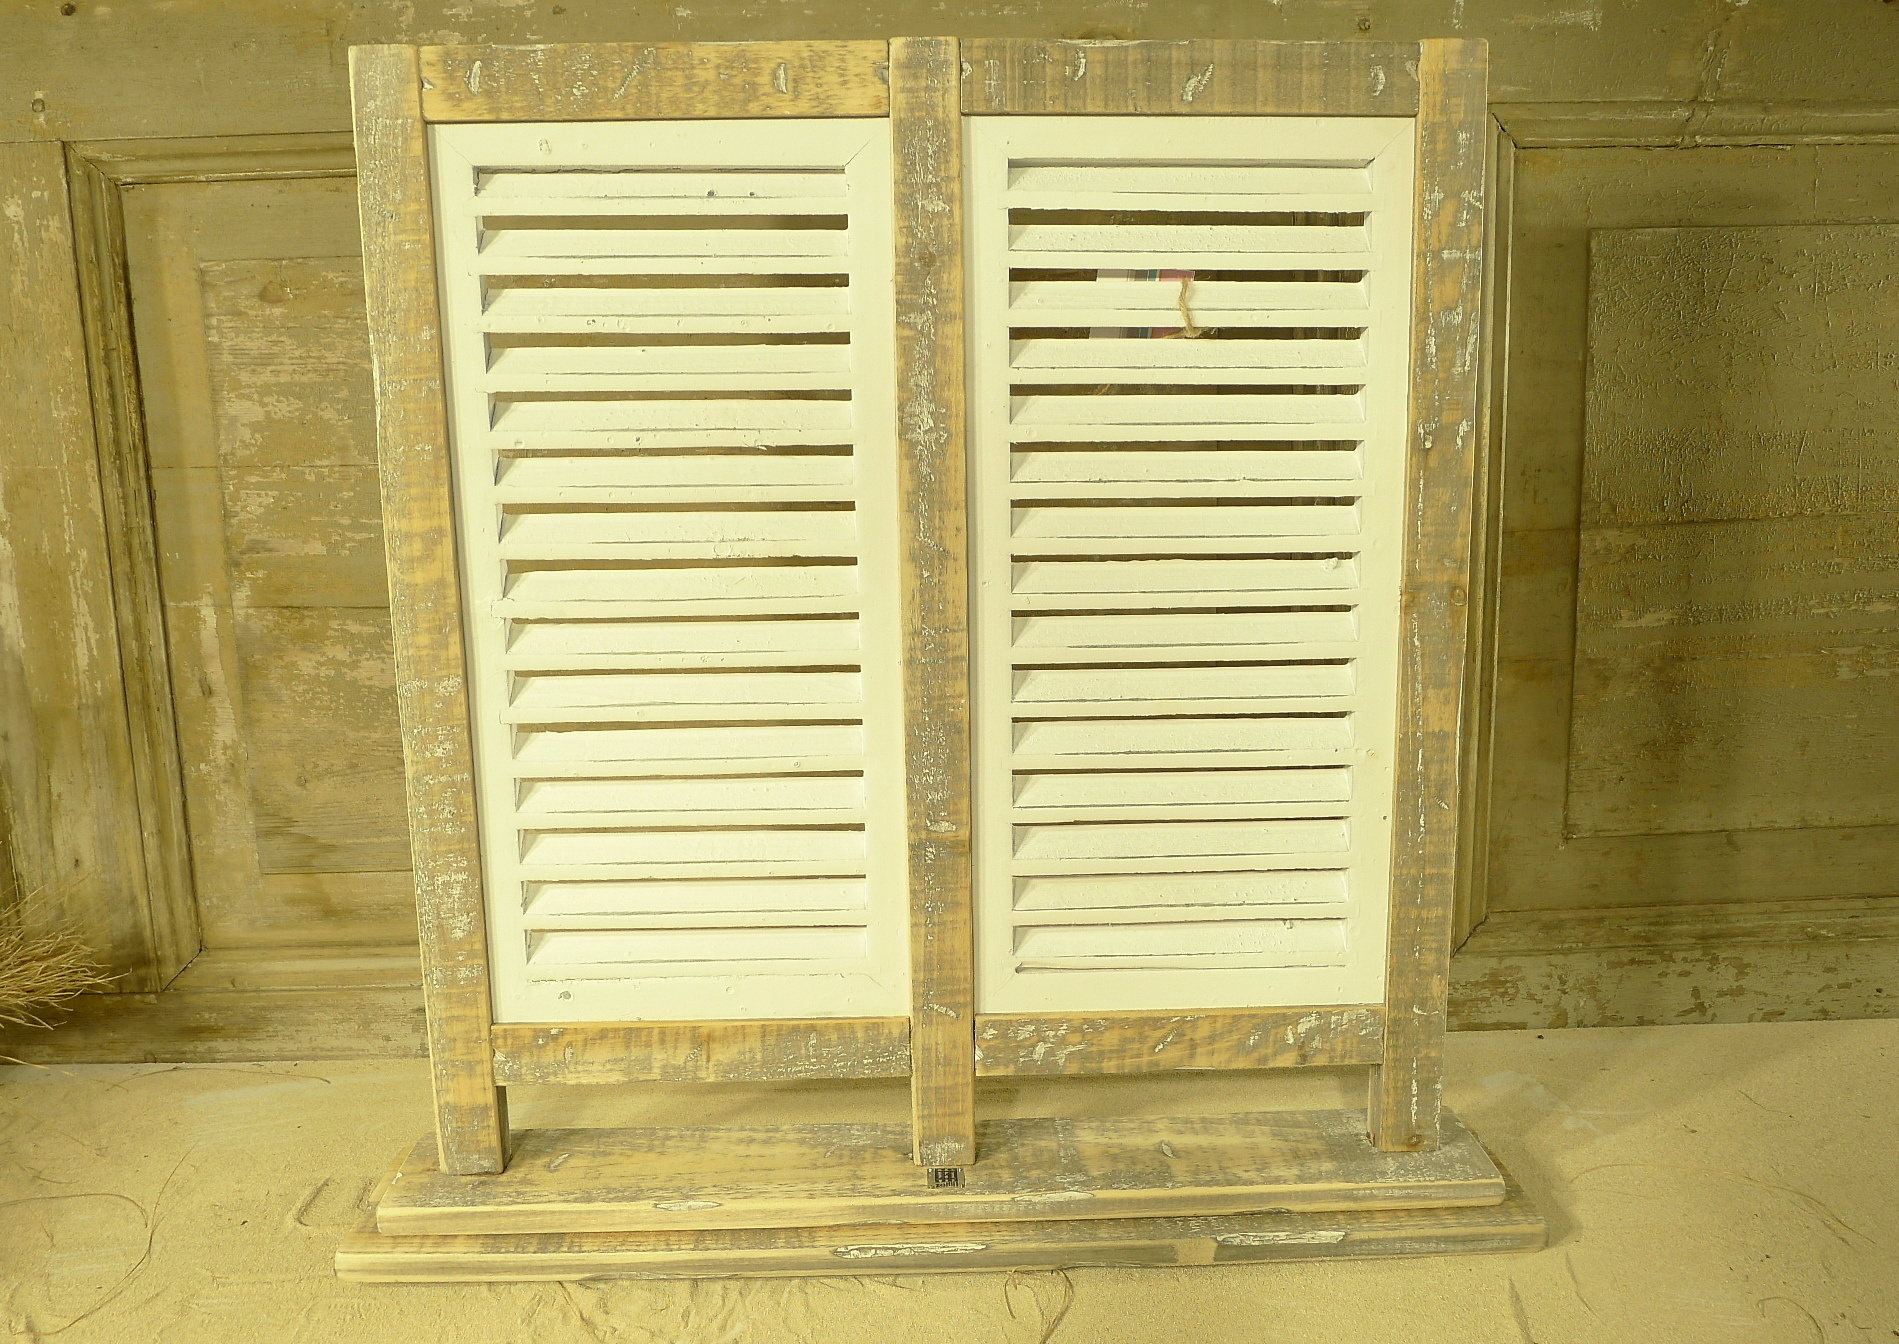 home deco old dutch shutter ger 2-10